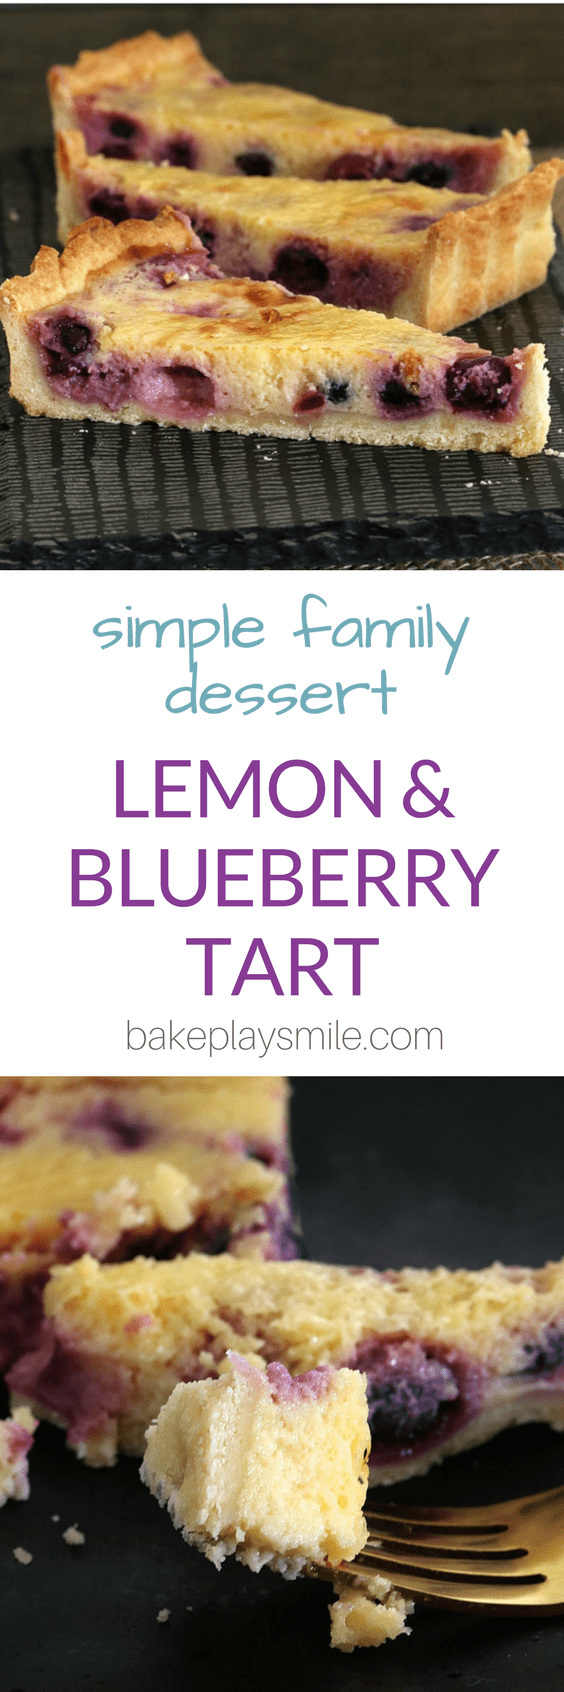 A classic Lemon Blueberry Tart! This is the most deliciously simple dessert... a total crowd-pleaser. Make your own pastry or use a store-boughtversion.